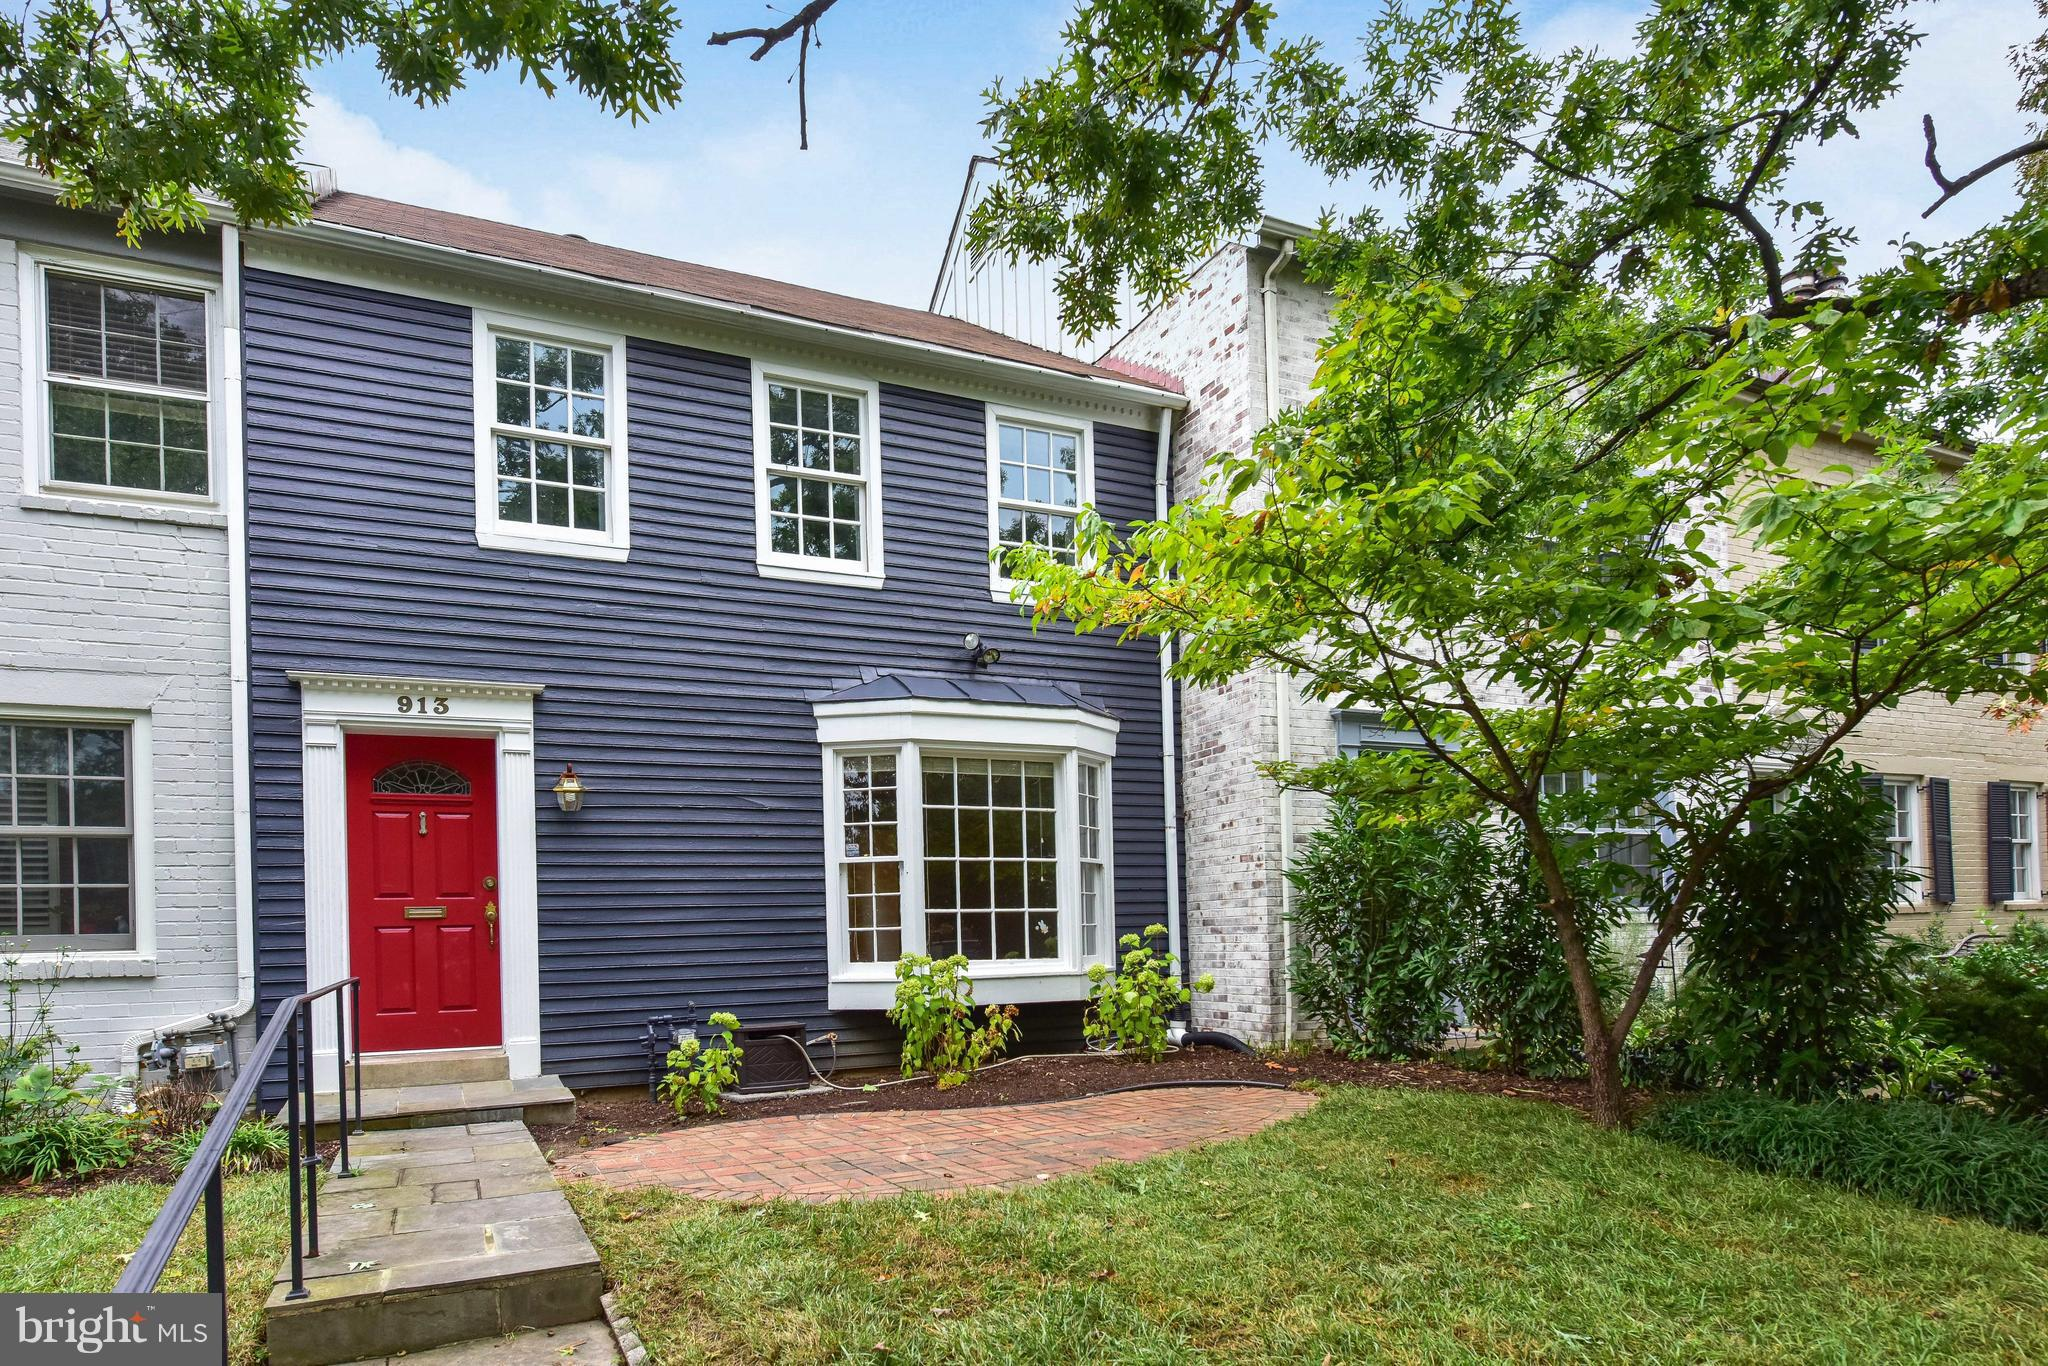 Rare find in Lyles Crouch school district! 3 BD's & 2 BA's on U1! Charming TH for those looking for a spacious home & lot!LR w/ gas FP leads to open concept, beautifully renov'd KIT(2015)+dining area.LL:Newly renov'd bonus rm + full BA.Bright FR leads to rear patio + 2 OSP spaces.Front,rear terraces allow for plenty of entertaining,relaxing space.Blocks to GW Pkwy,I95,shops,restaurants of Old Town